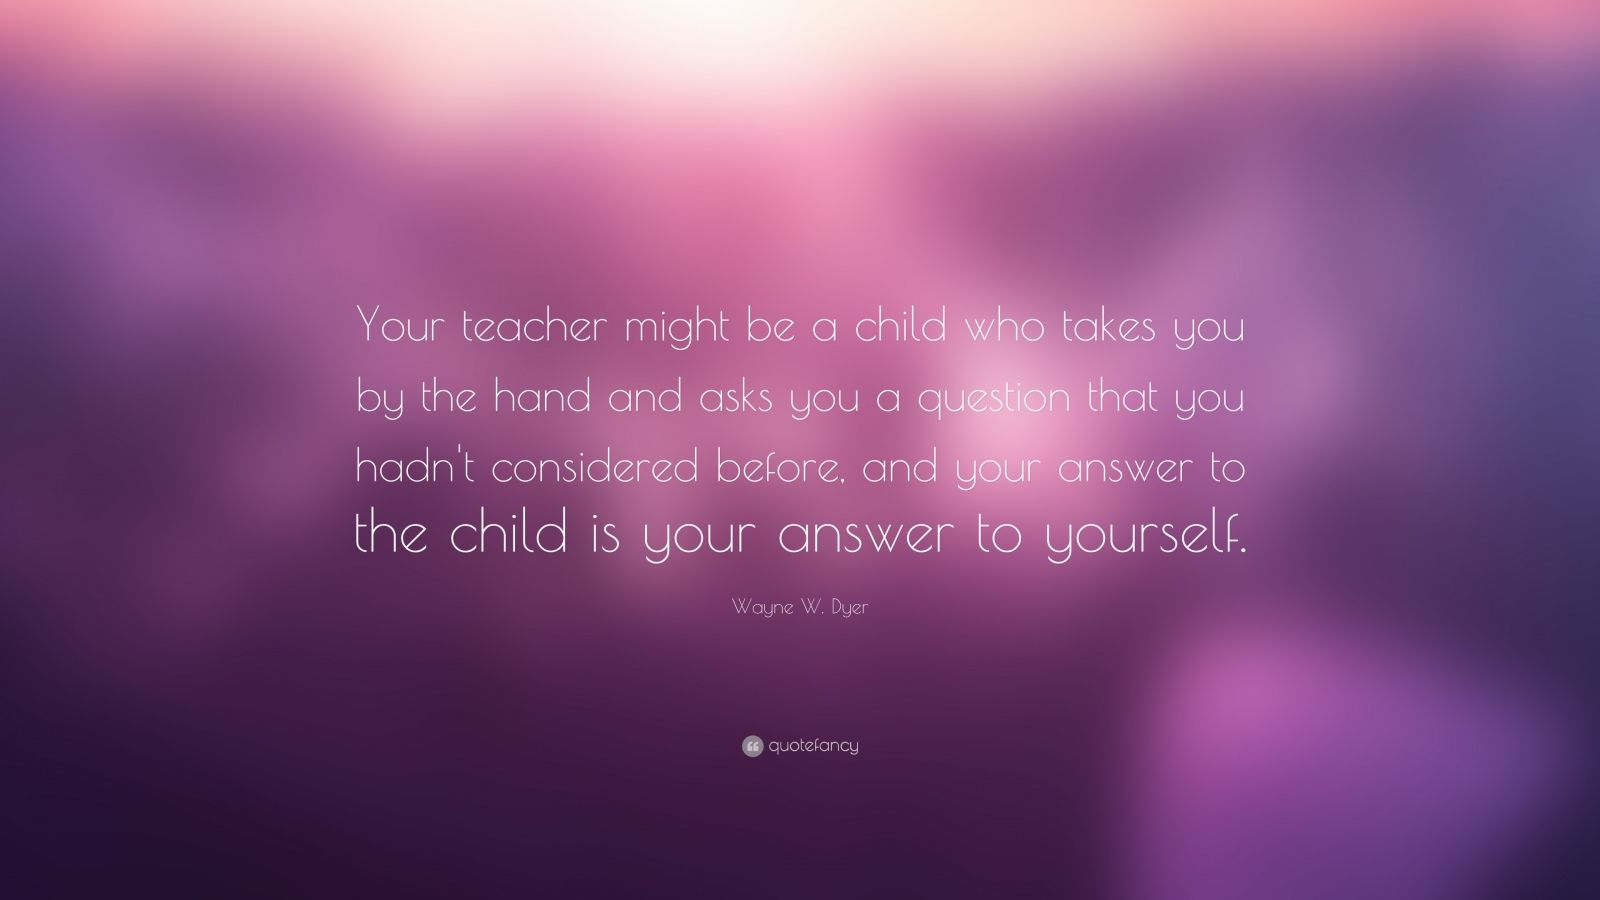 """Wayne W. Dyer Quote: """"Your teacher might be a child who takes you by the hand and asks you a question that you hadn't considered before, and your answer to the child is your answer to yourself."""""""